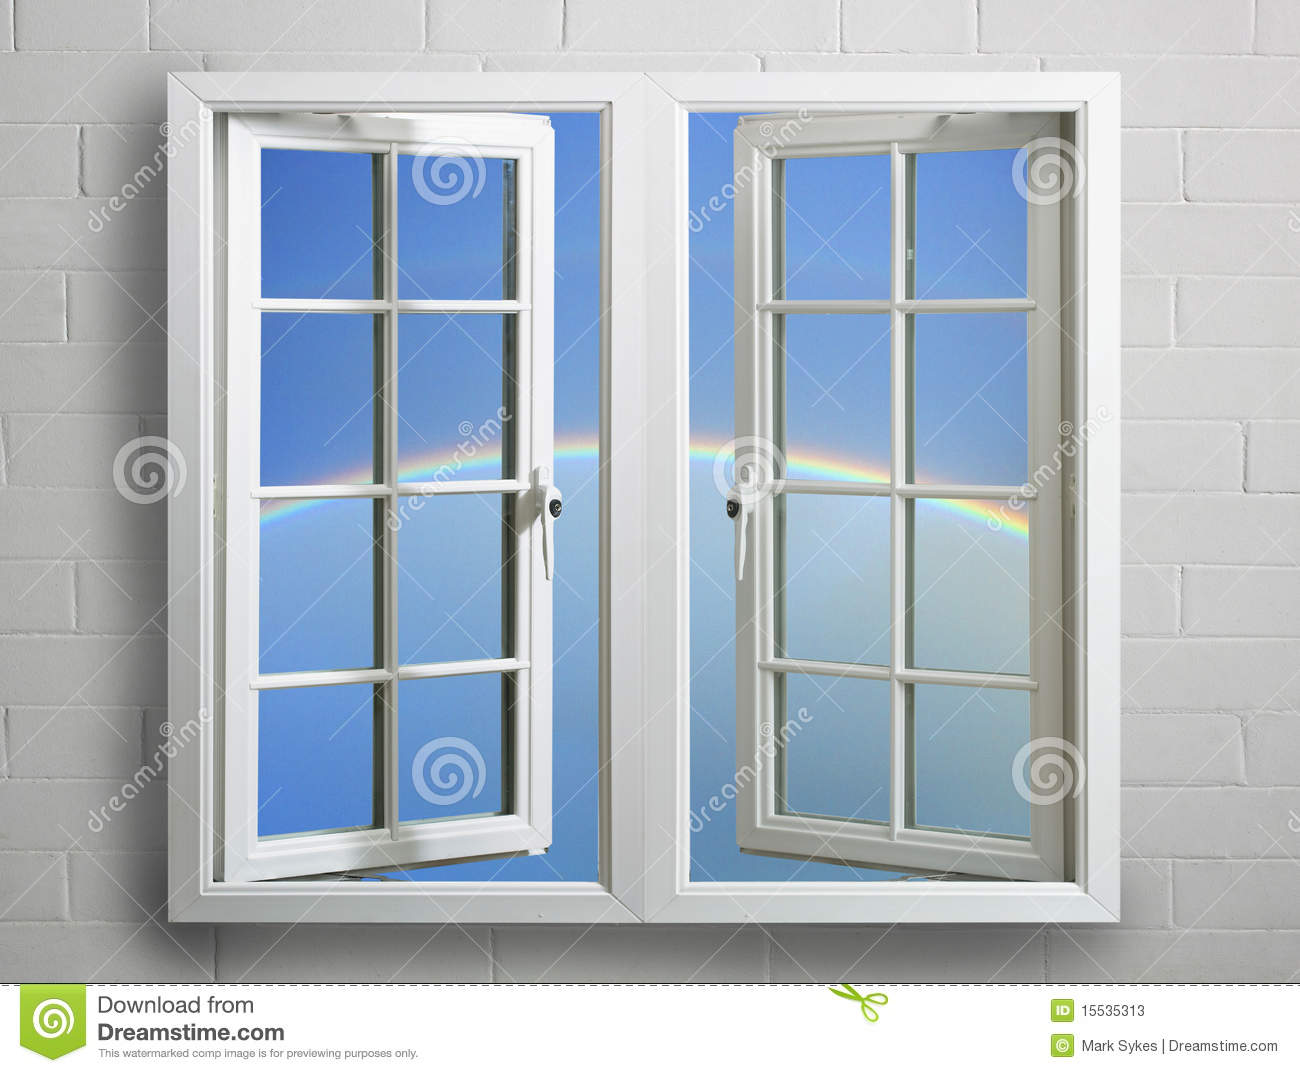 White window frame - Blue Frame Modern Open Plastic Pvc Rainbow Sky View White Window